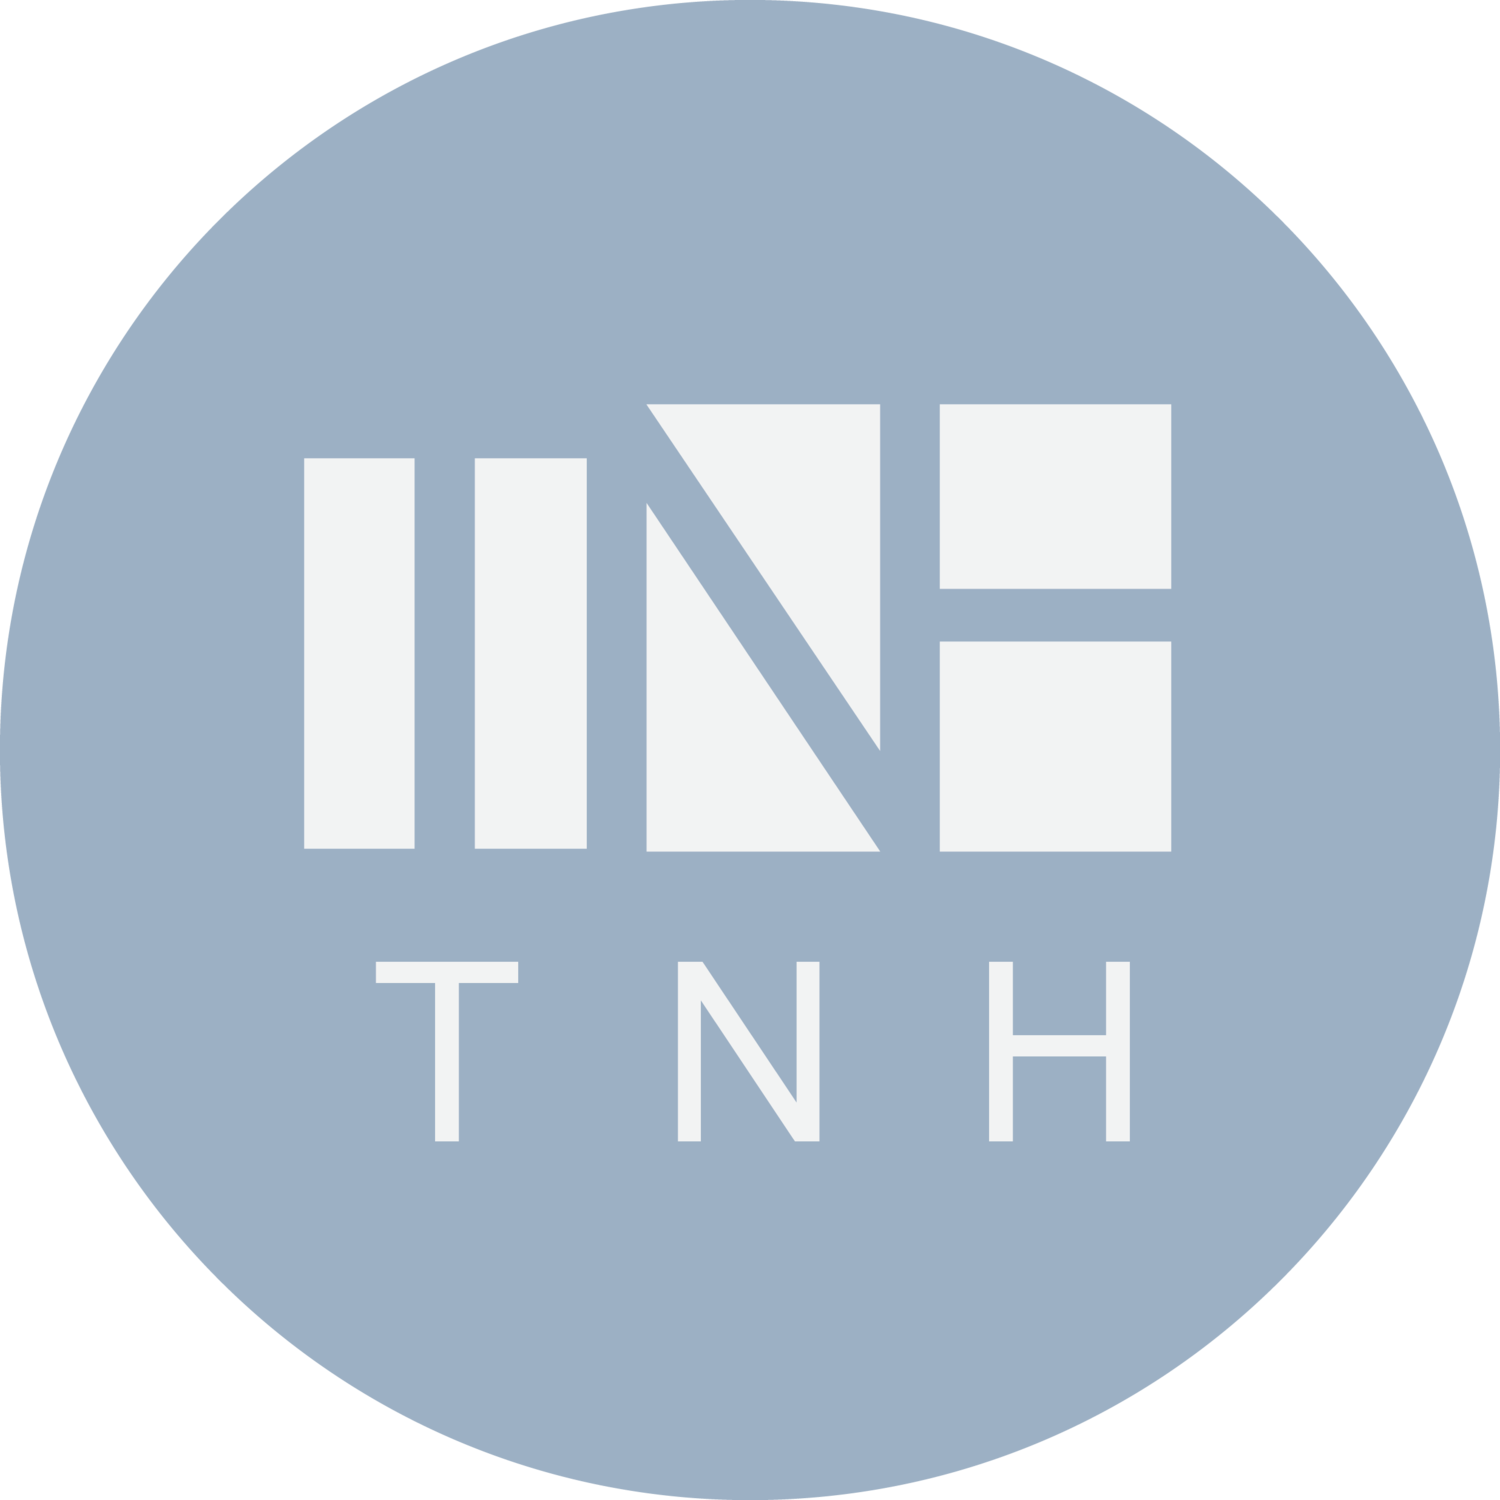 TNH Student Advertising Agency